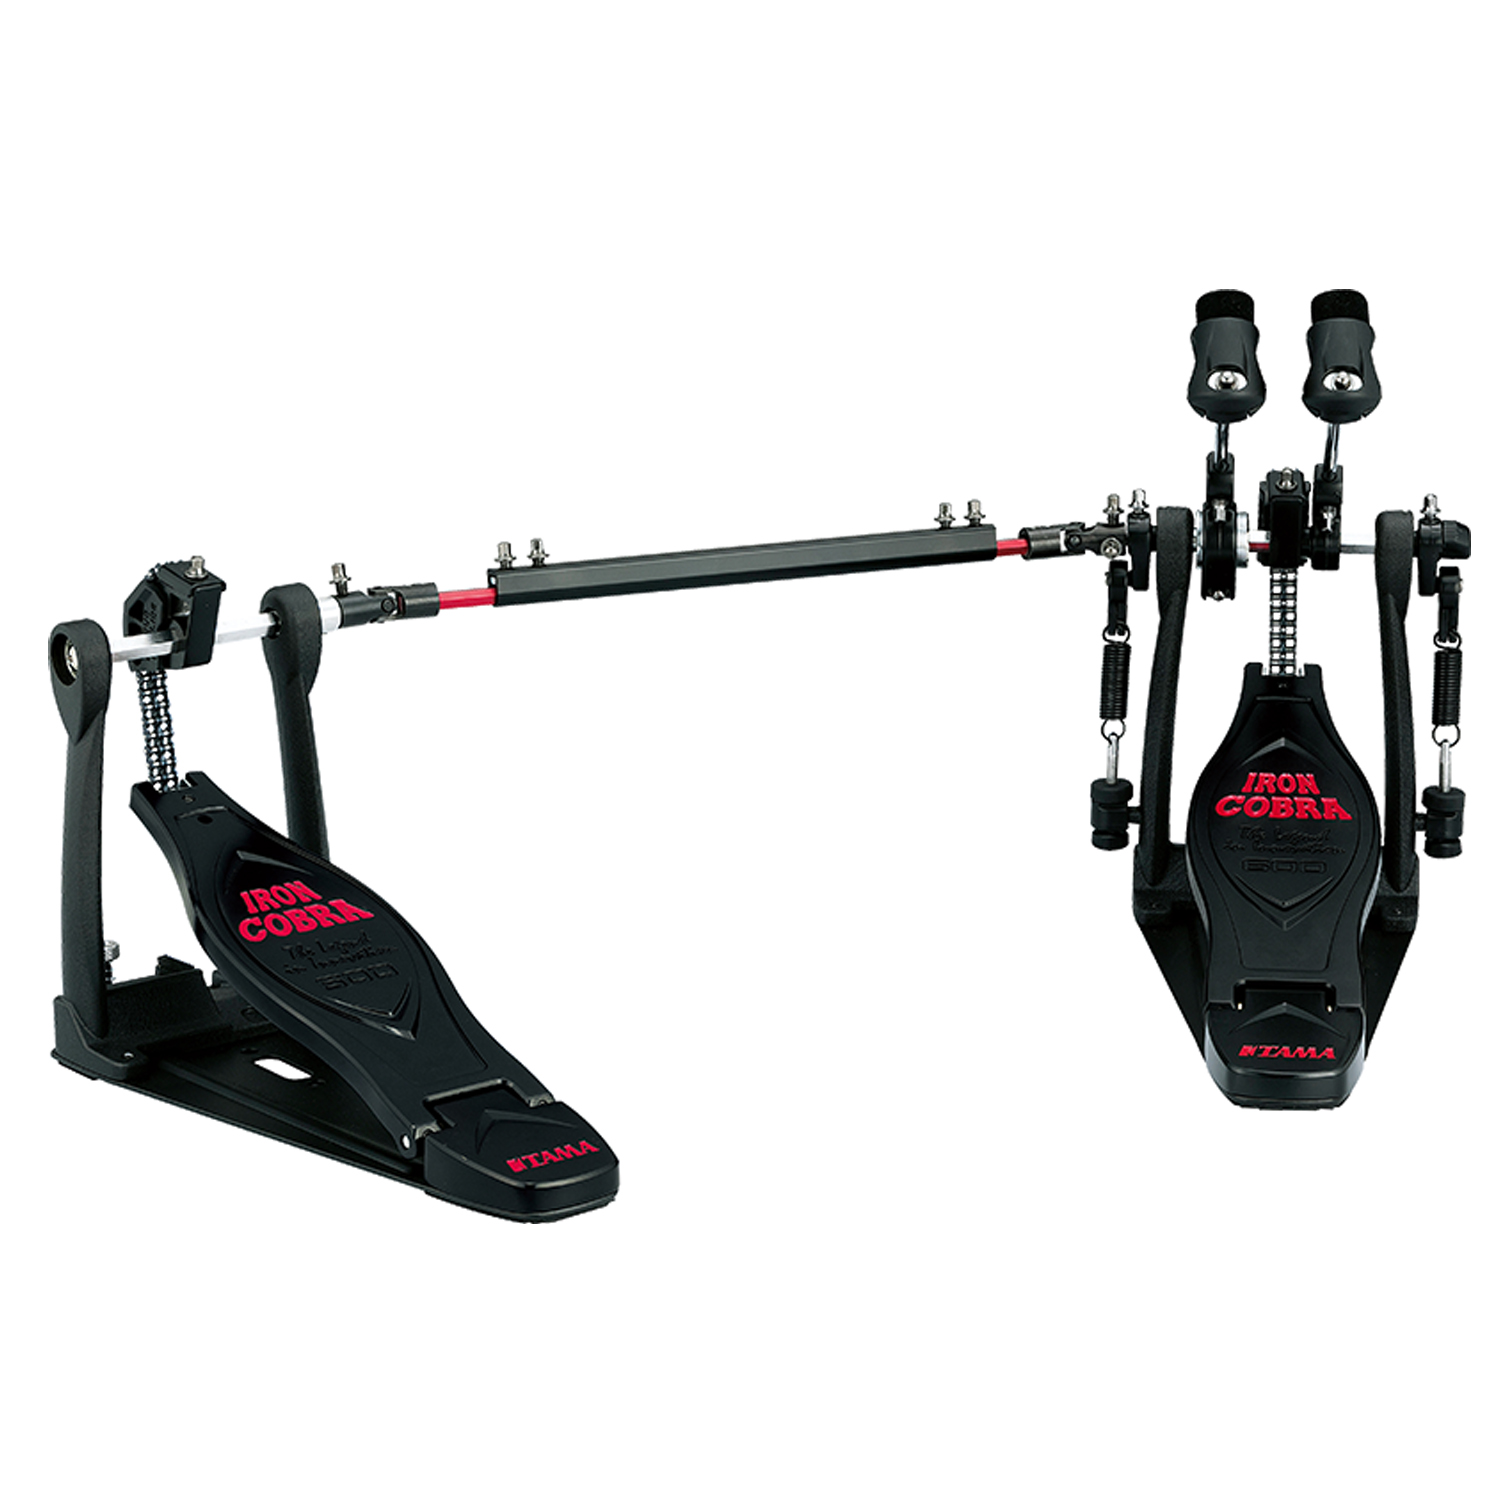 musicworks drums percussion kick pedals kick pedals tama twin iron cobra 600 black. Black Bedroom Furniture Sets. Home Design Ideas